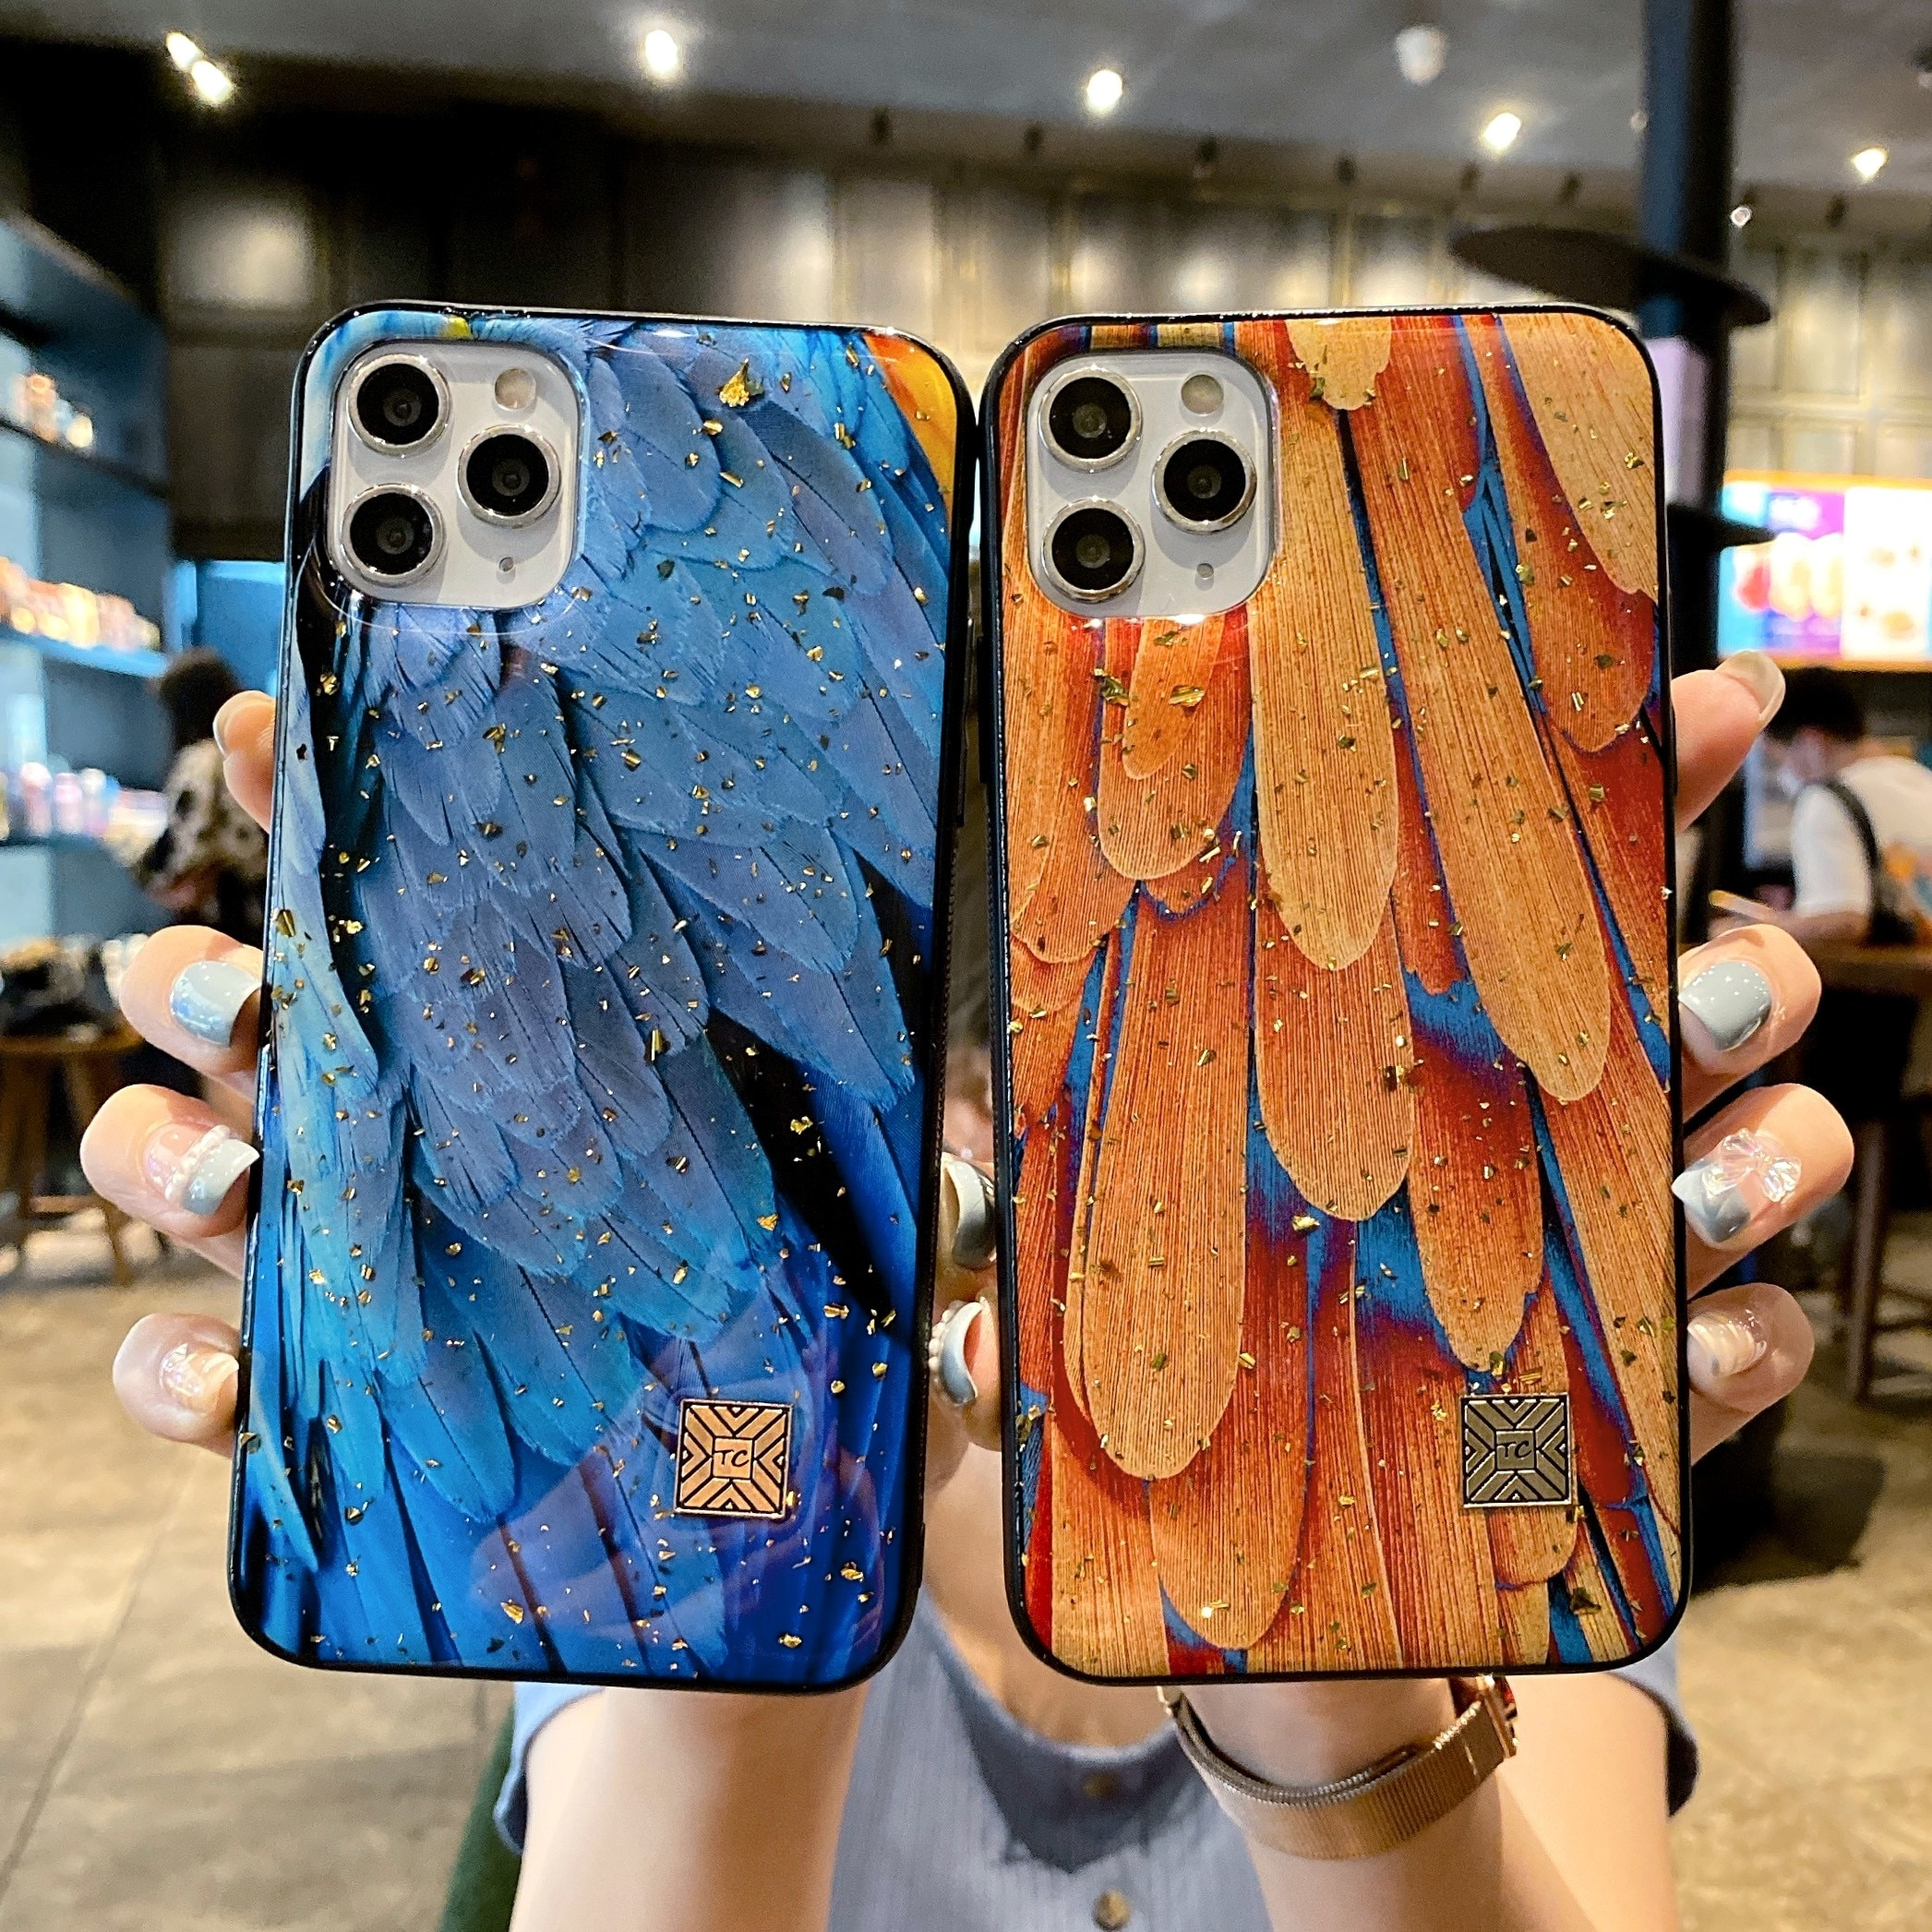 Literary Oil Painting Case For iPhone 11 12 Pro Max Mini 7 8 Plus XR X XS MAX Fashion Trend Creative